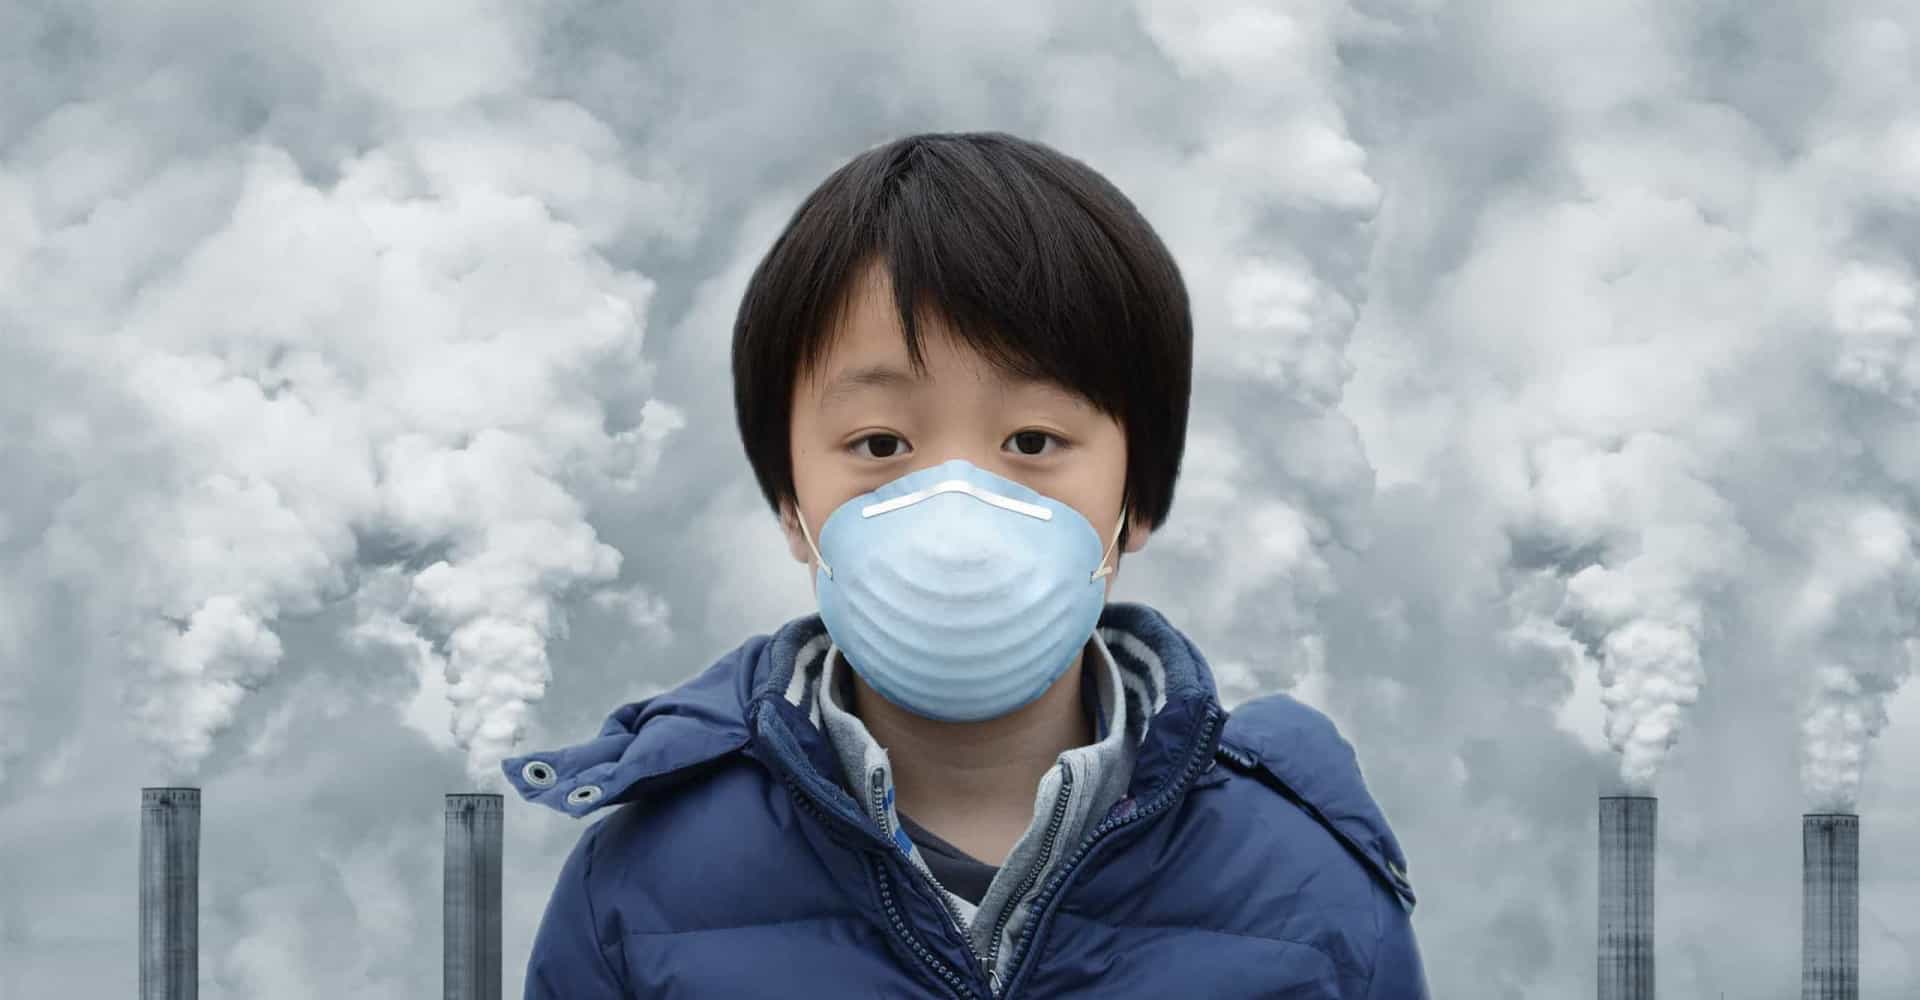 Terrifying facts about pollution from around the world